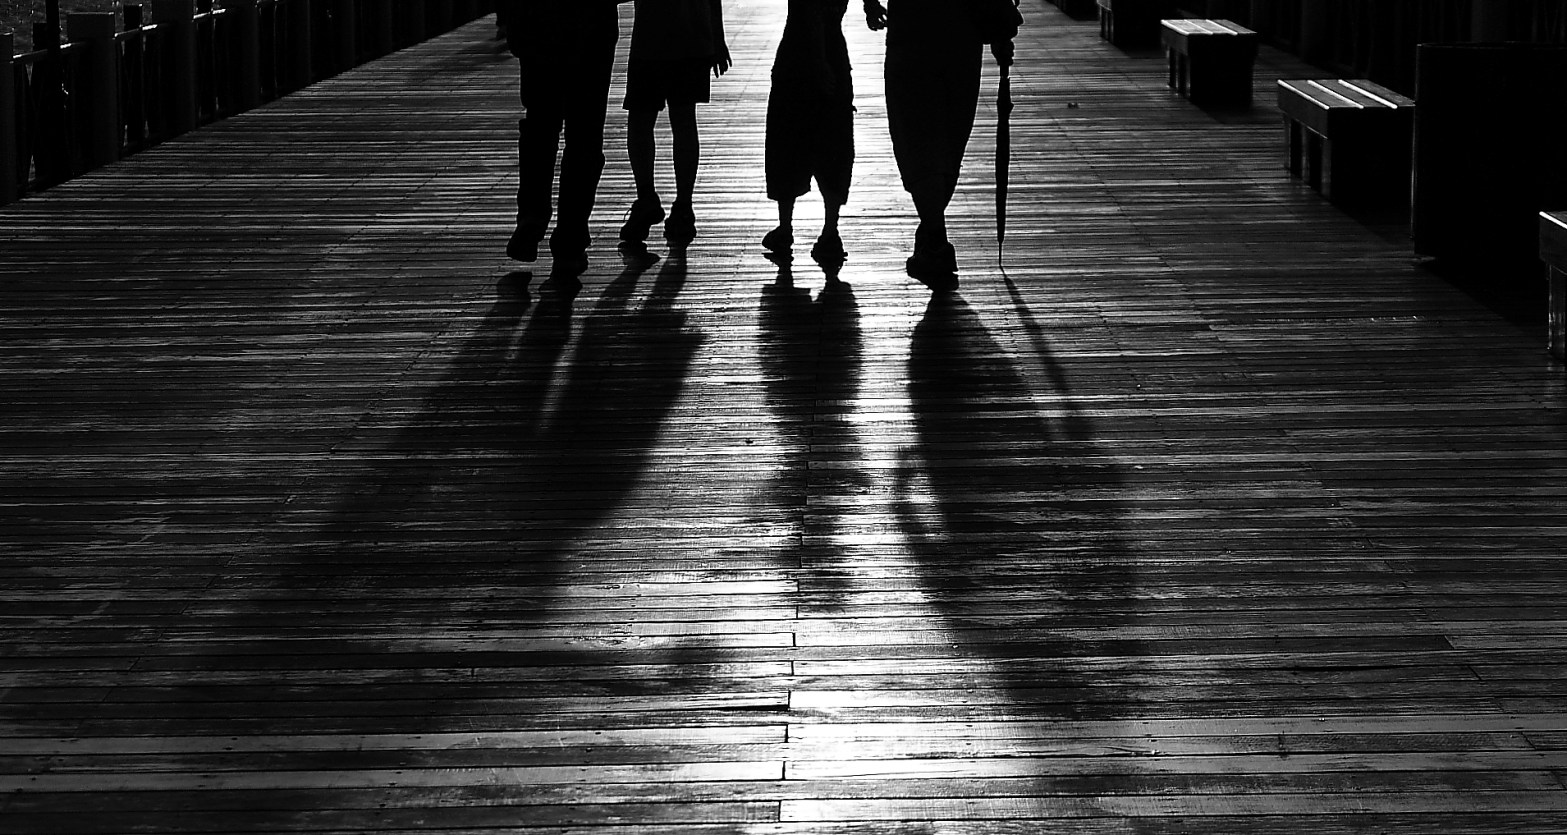 silhouette of 4 people walking